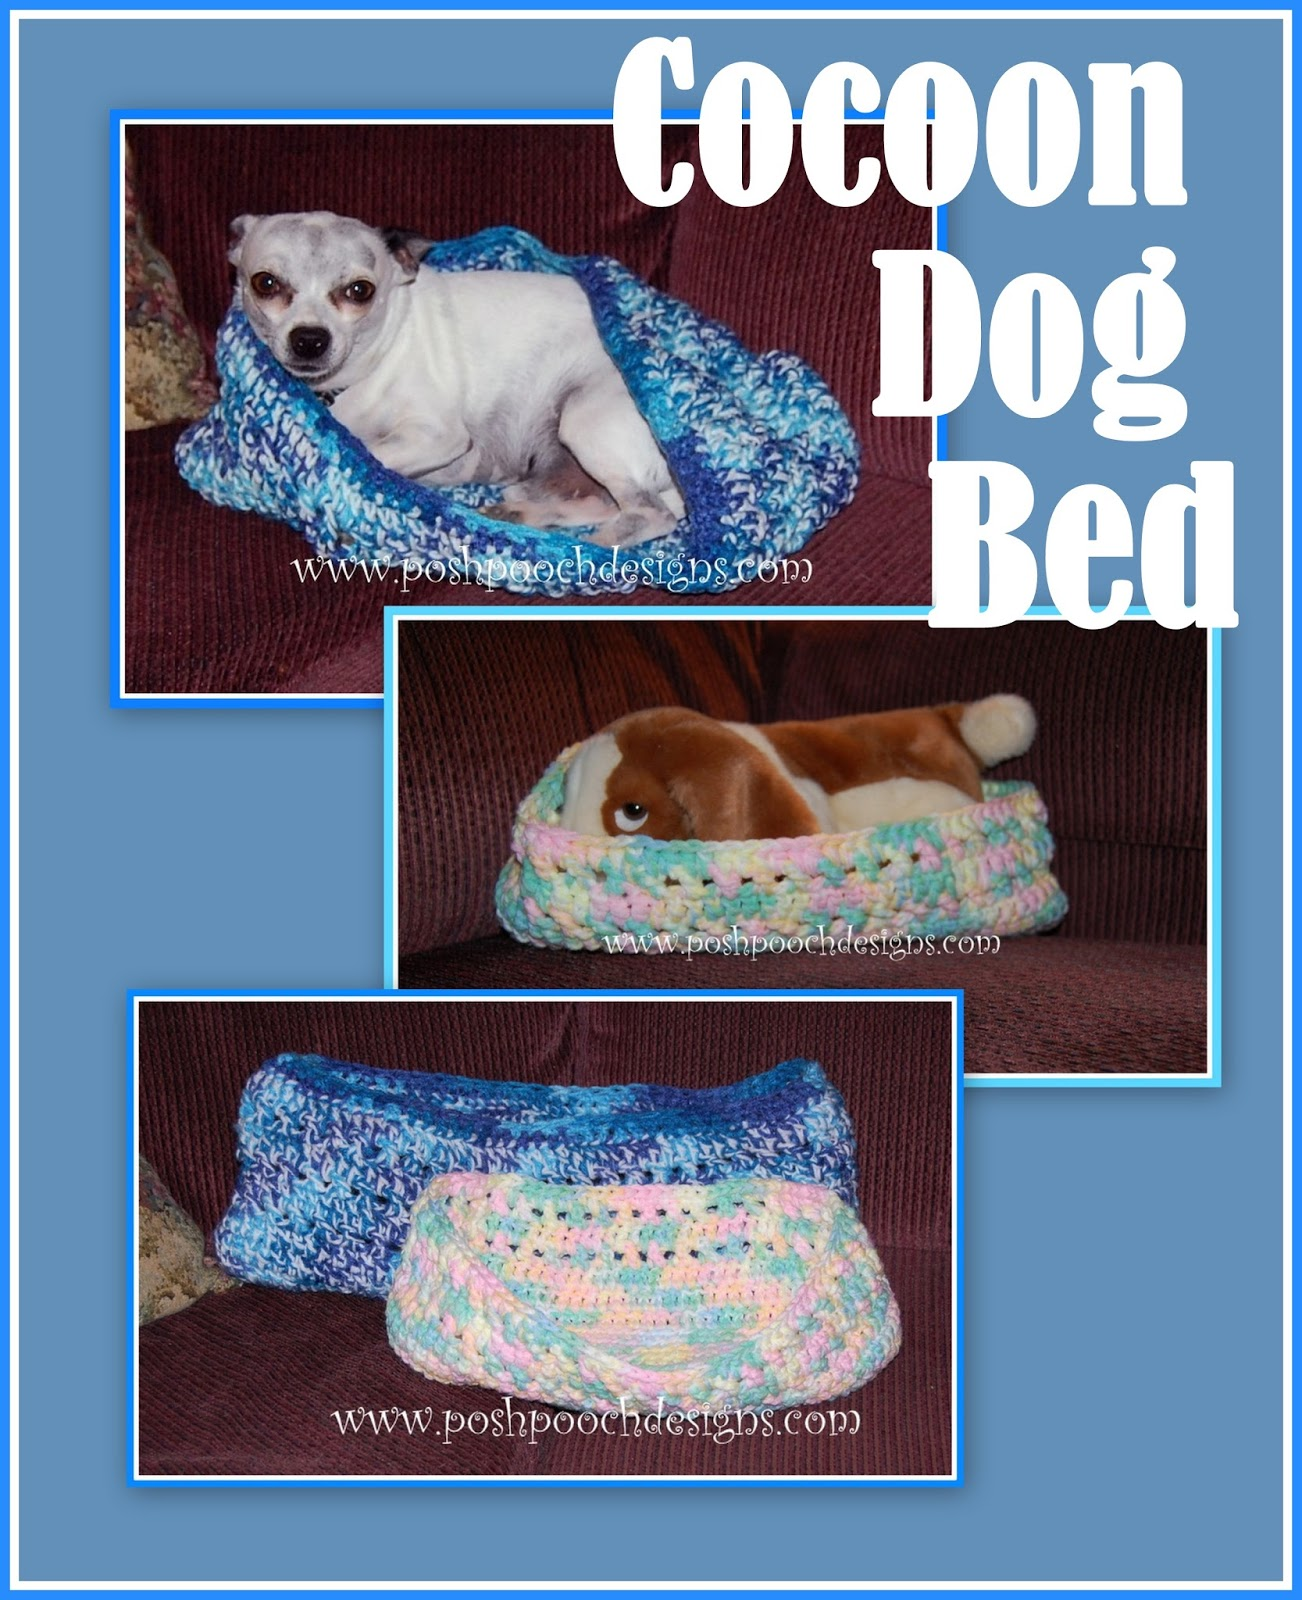 Posh Pooch Designs Dog Clothes Cocoon Dog Bed Crochet Pattern 2